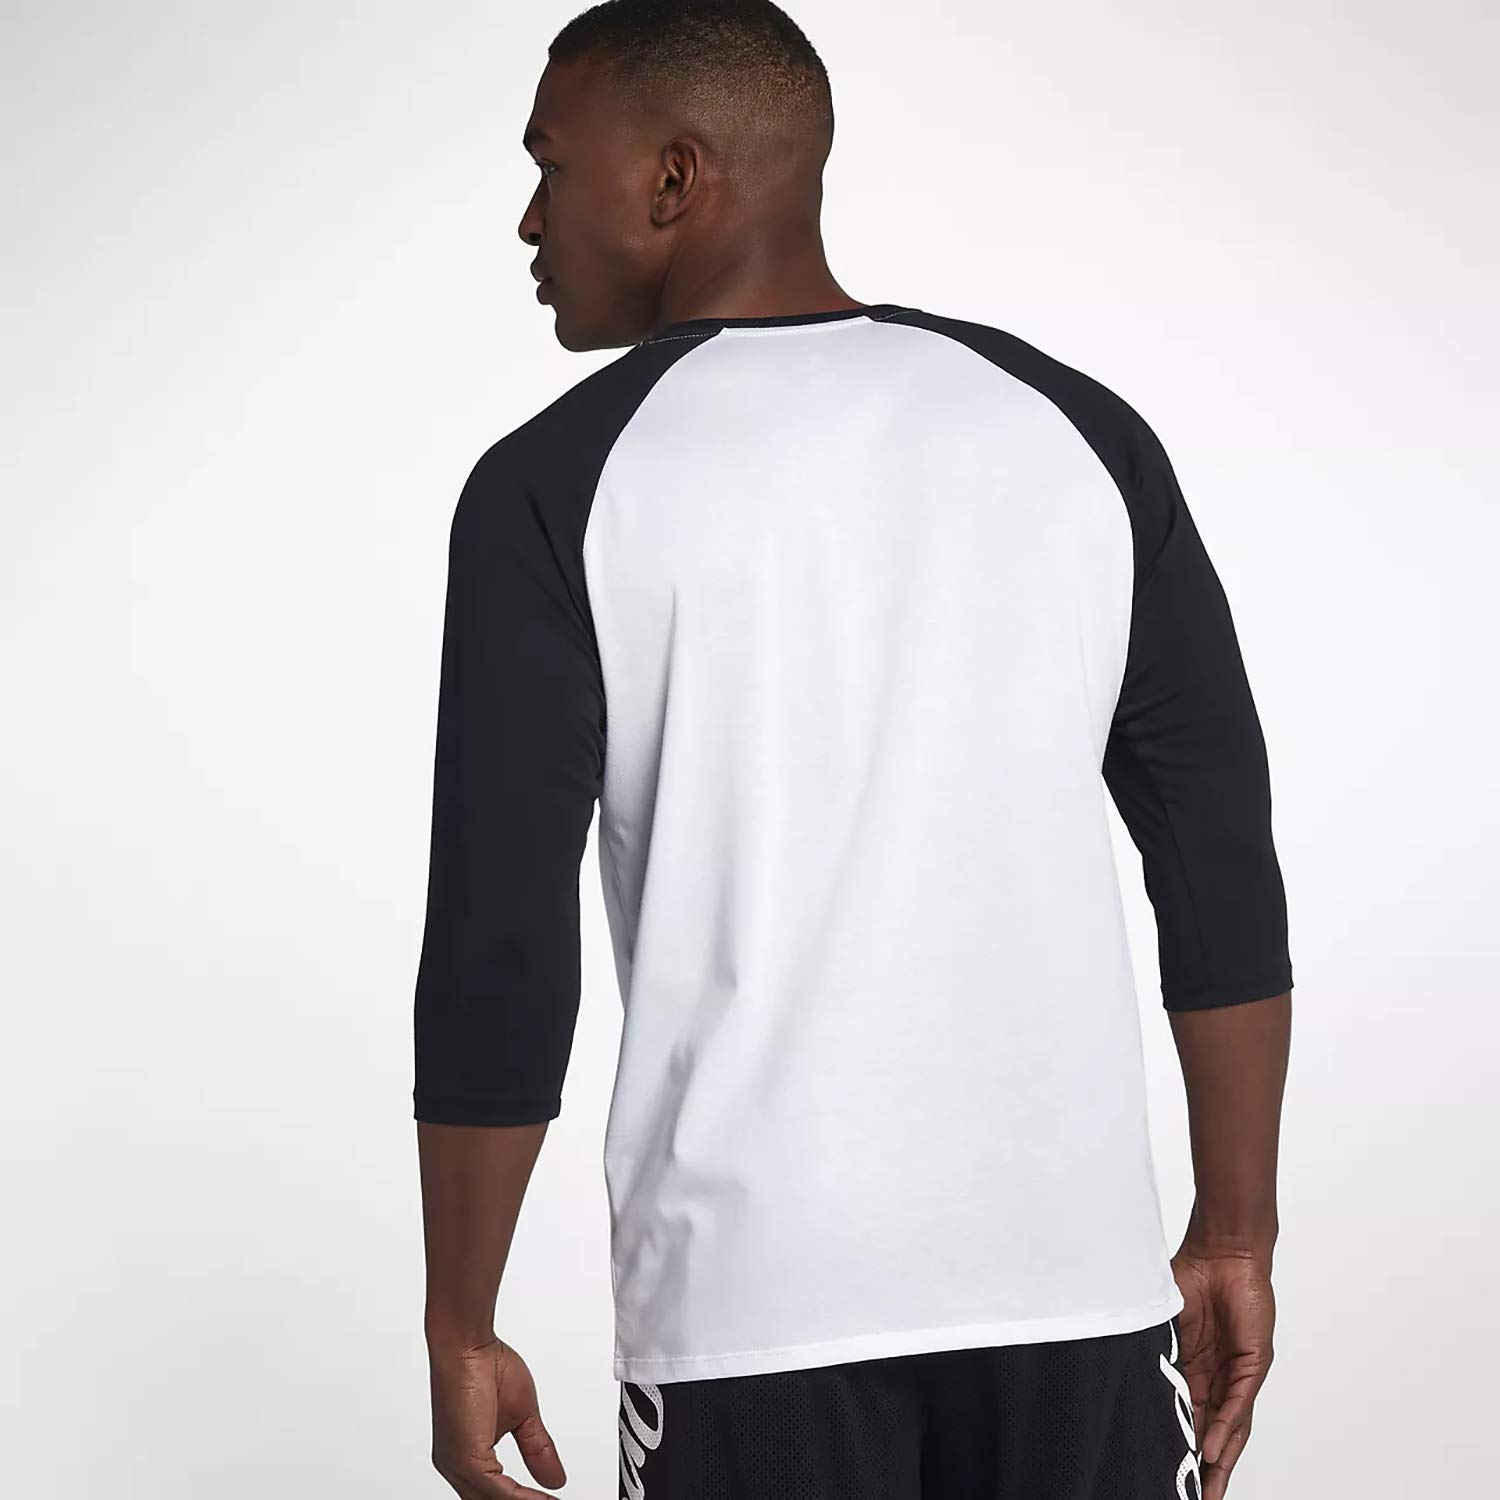 Men 3//4 Sleeve T Shirts 80/% Cotton,20/% Polyester Classic Unisex